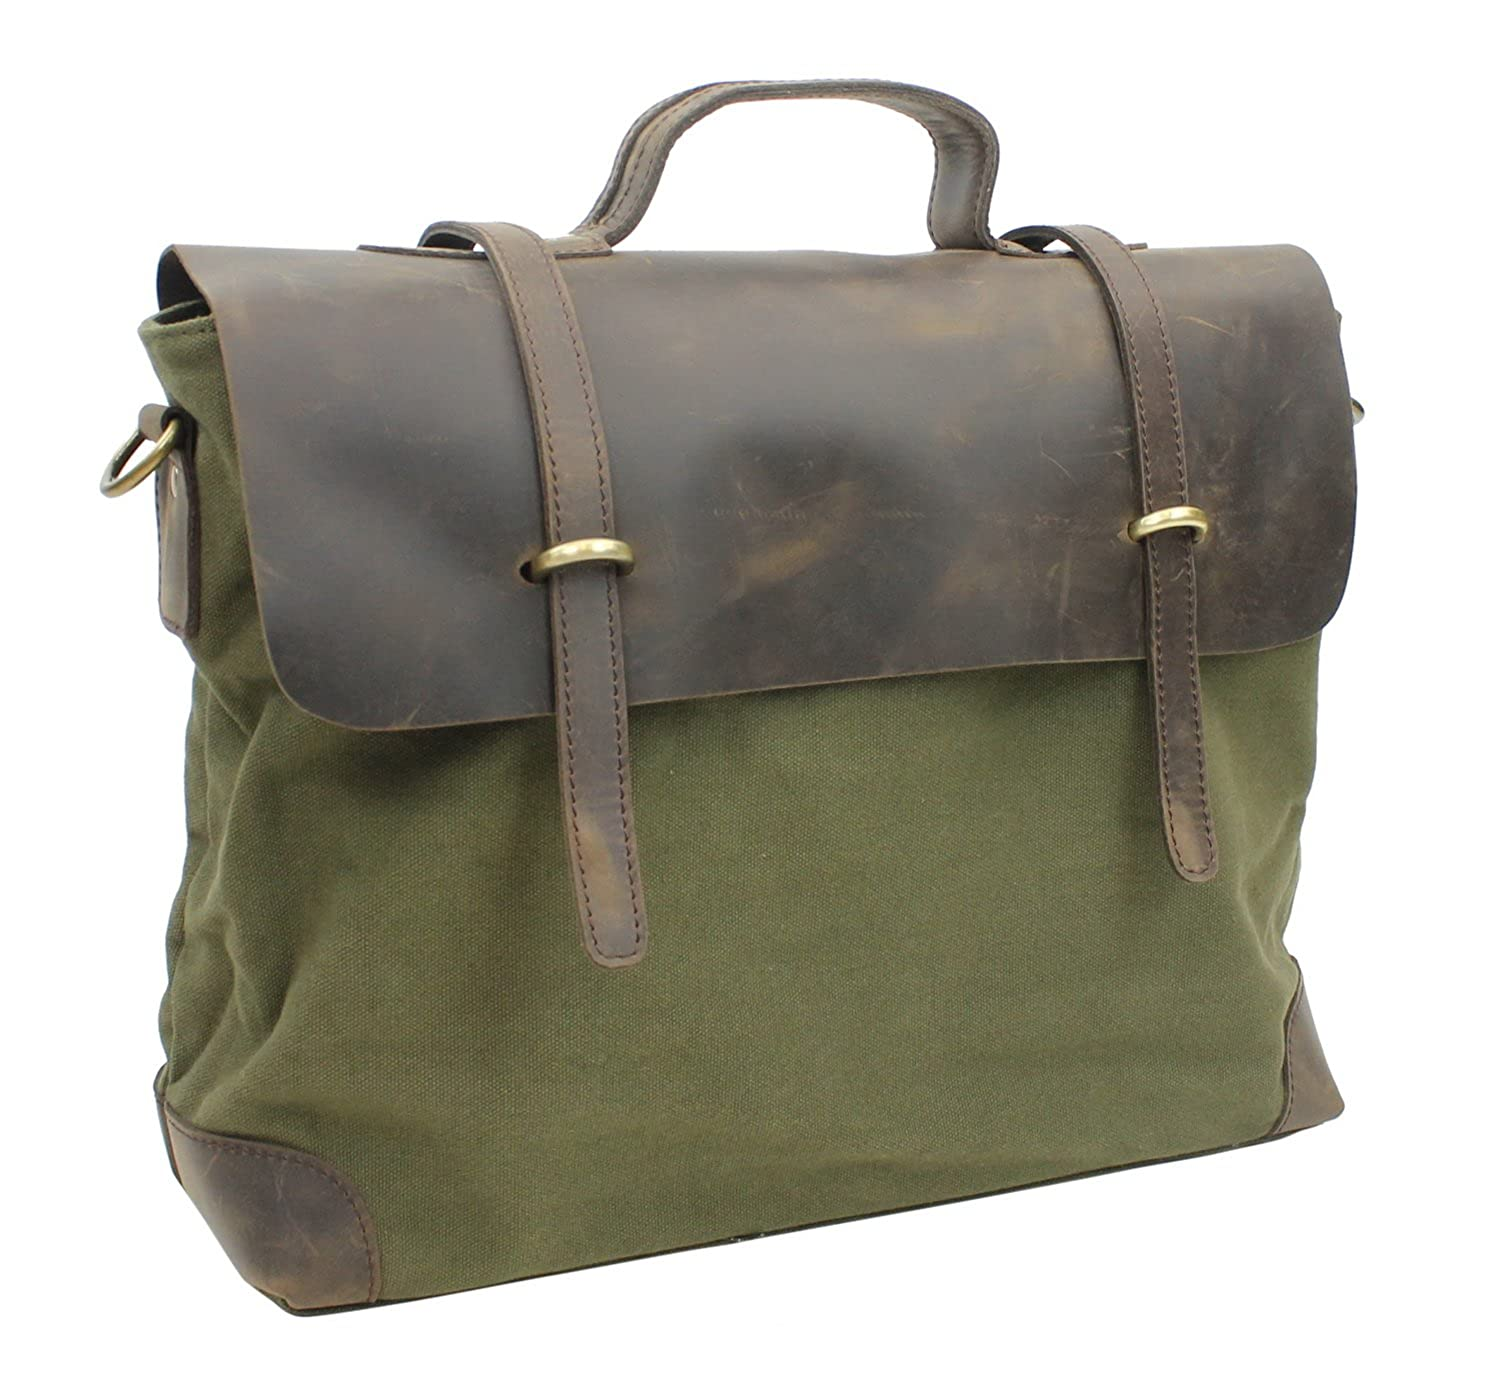 Casual Style Cowhide Leather Cotton Canvas Messenger Bag C41. Green B071VS3PLF